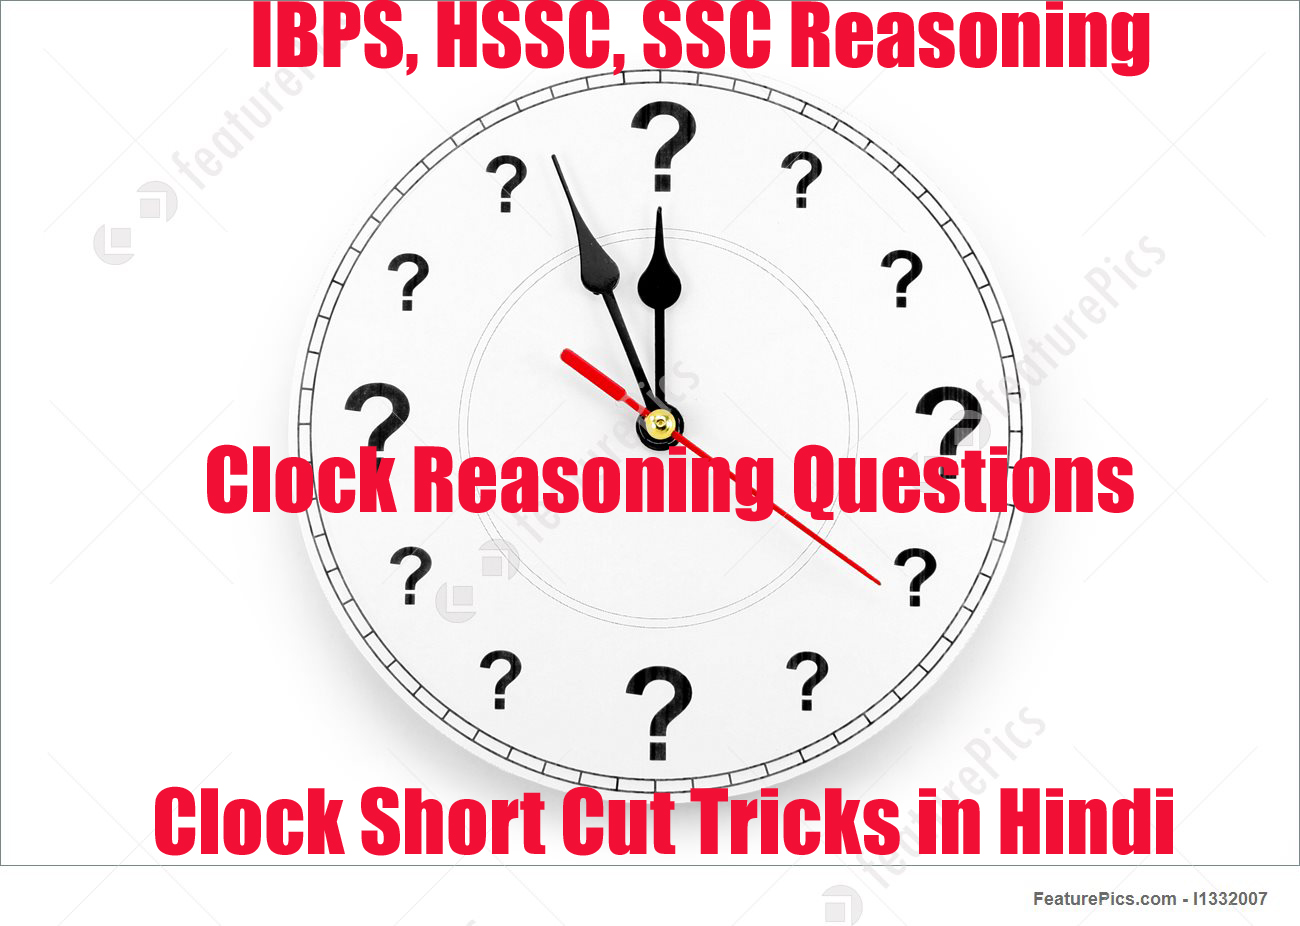 Clock Questions Reasoning. Clock Chapter Reasoning Solved Questions. Clock SSC Solved Questions. Clock Reasoning Questions. Clock Questions Attempt Online Now. Clock Hindi Questions. Clock Latest Solved Questions. Clock Previous Year Exam Paper Questions, HSSC Reasoning Questions, CHSL Reasoning, Bankin IBPS, RRB Reaso